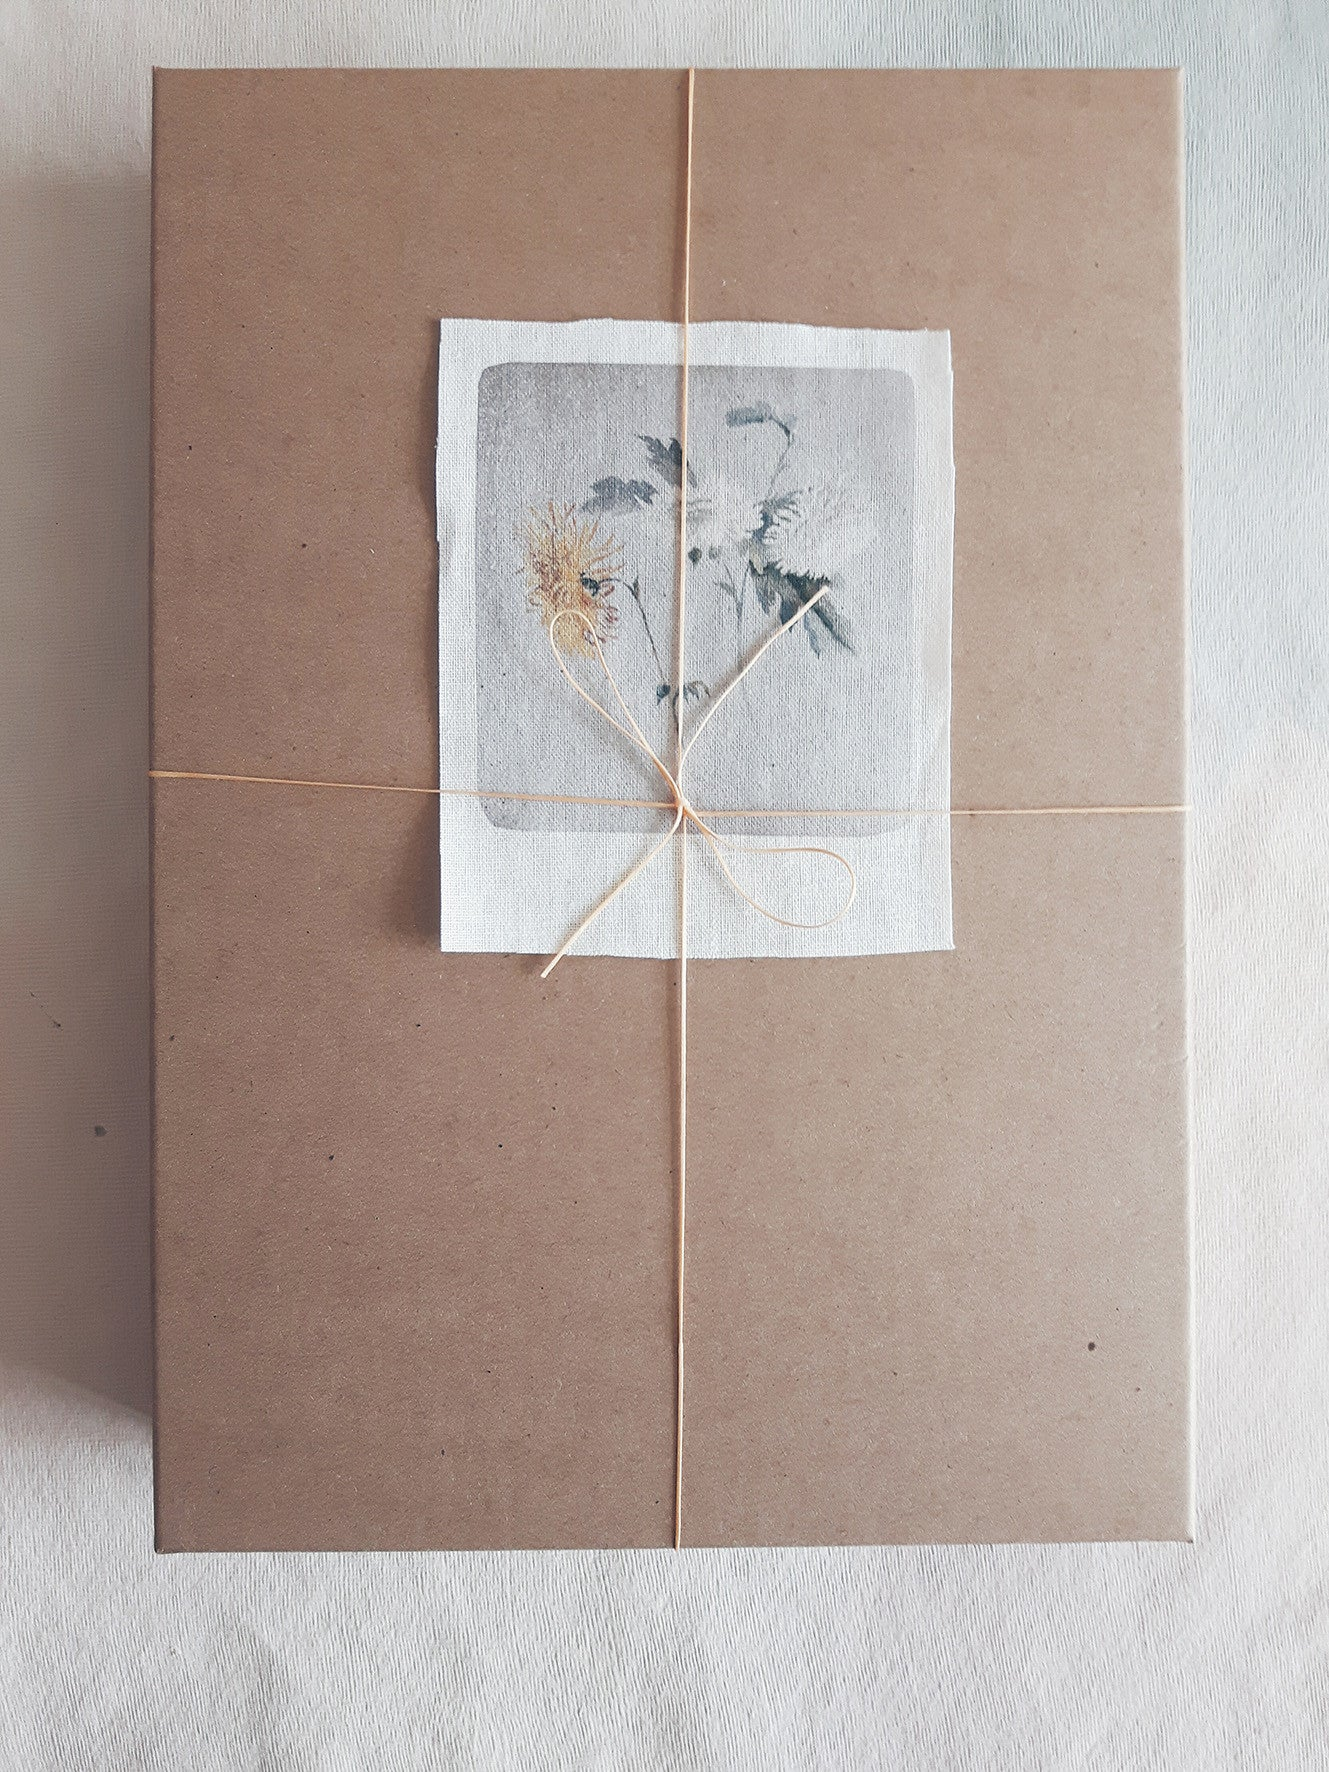 'THIS HOUR OF MINE' BOX - THE CURATED WALL - PROJECT TWO